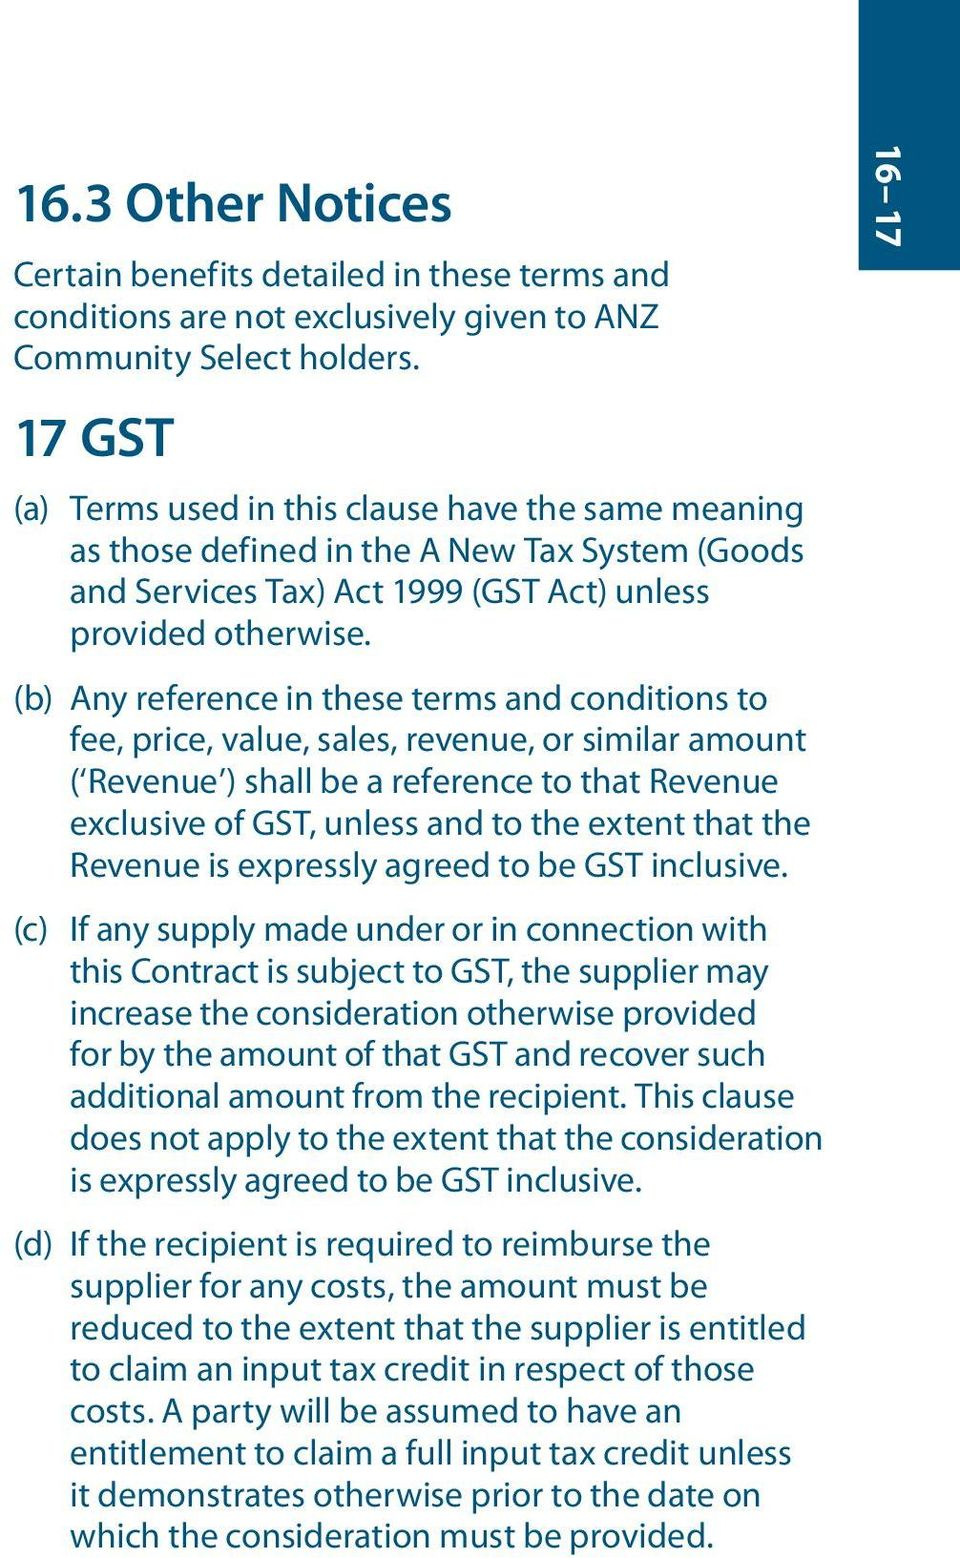 (b) Any reference in these terms and conditions to fee, price, value, sales, revenue, or similar amount ( Revenue ) shall be a reference to that Revenue exclusive of GST, unless and to the extent